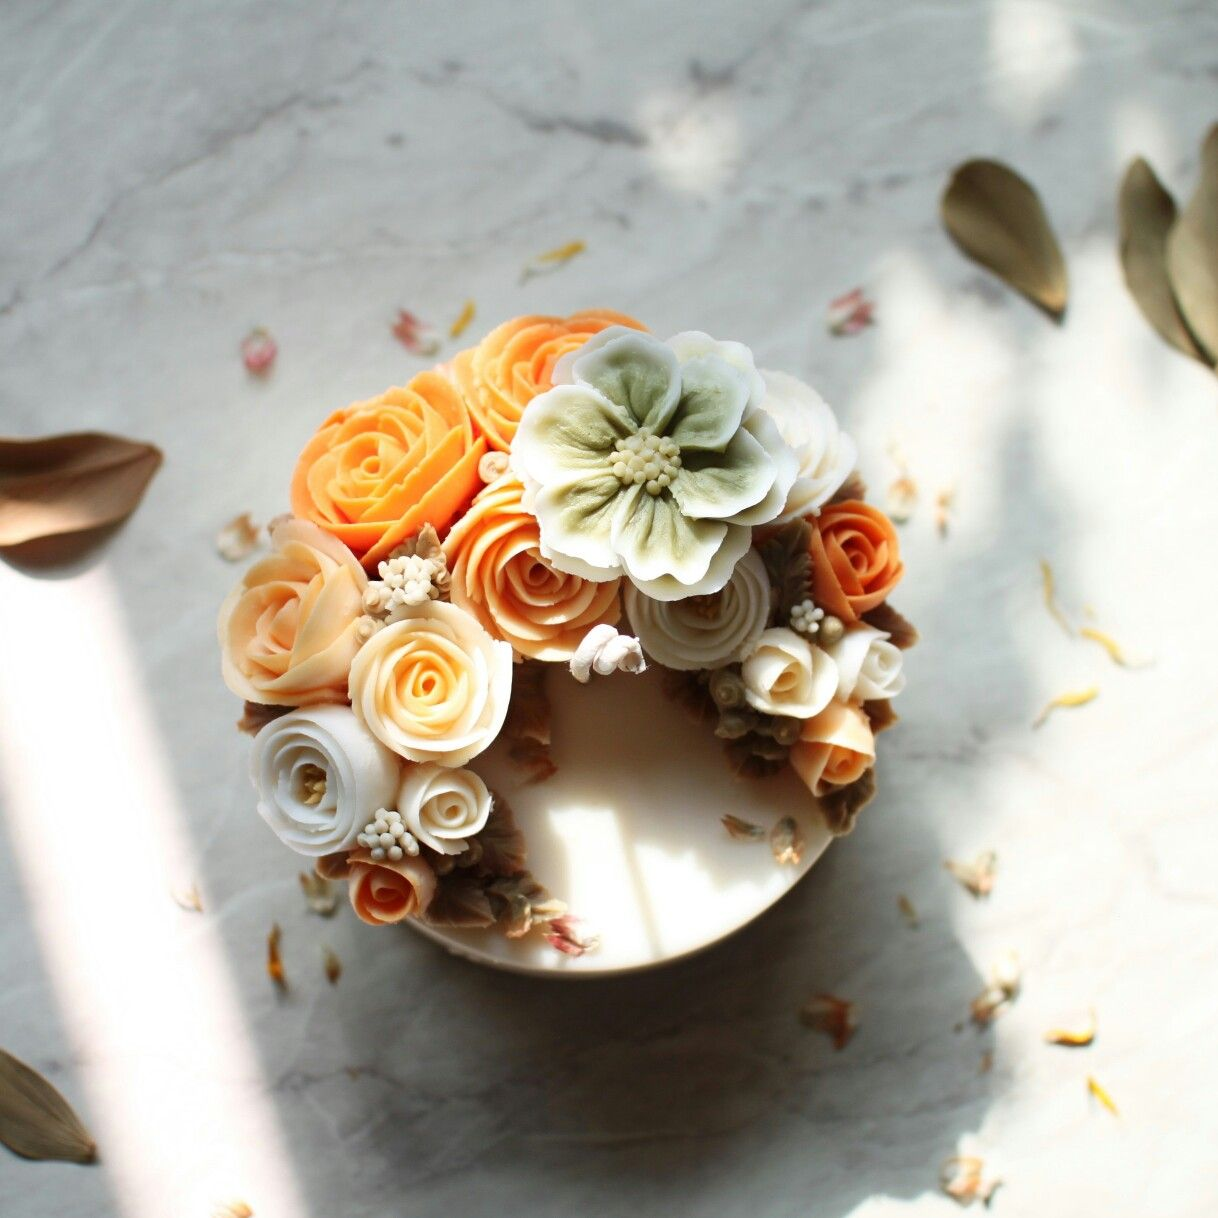 Korea Soy Wax Flower Candles Soy Wax Candles Diy Wax Candles